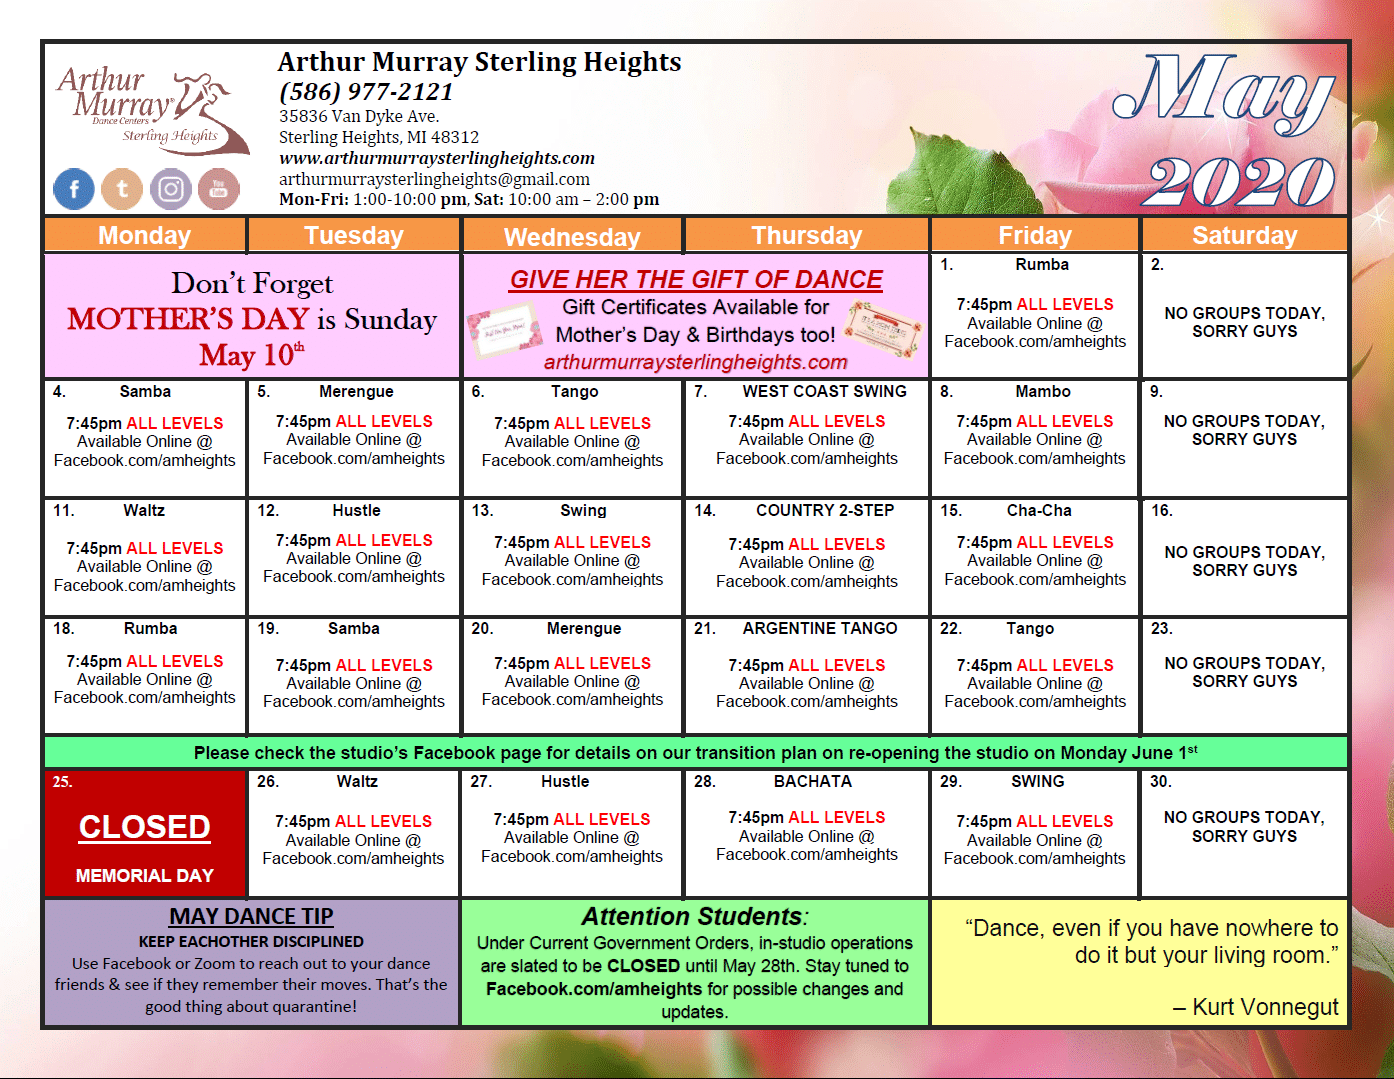 Arthur Murray Dance Studio - Sterling Heights